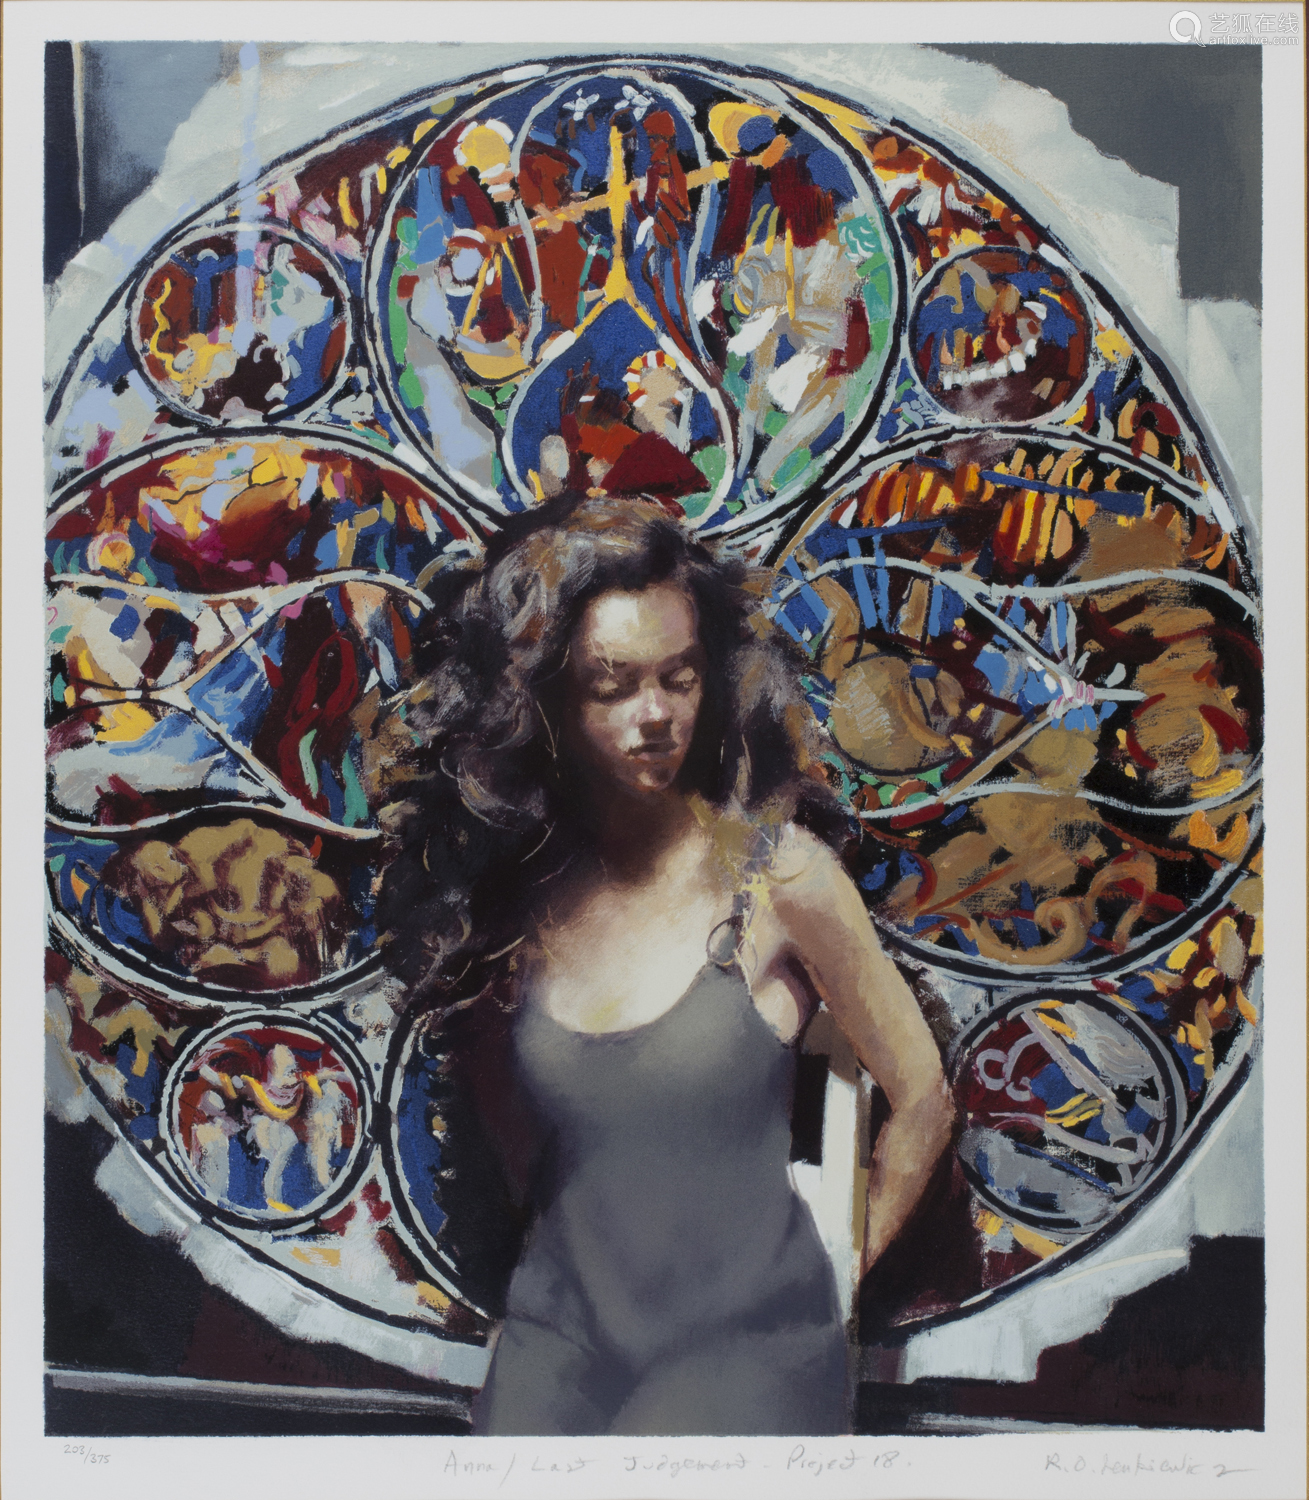 Robert O. Lenkiewicz - 'Anna / Last Judgement Project 18', 20th century colour print, signed, titled